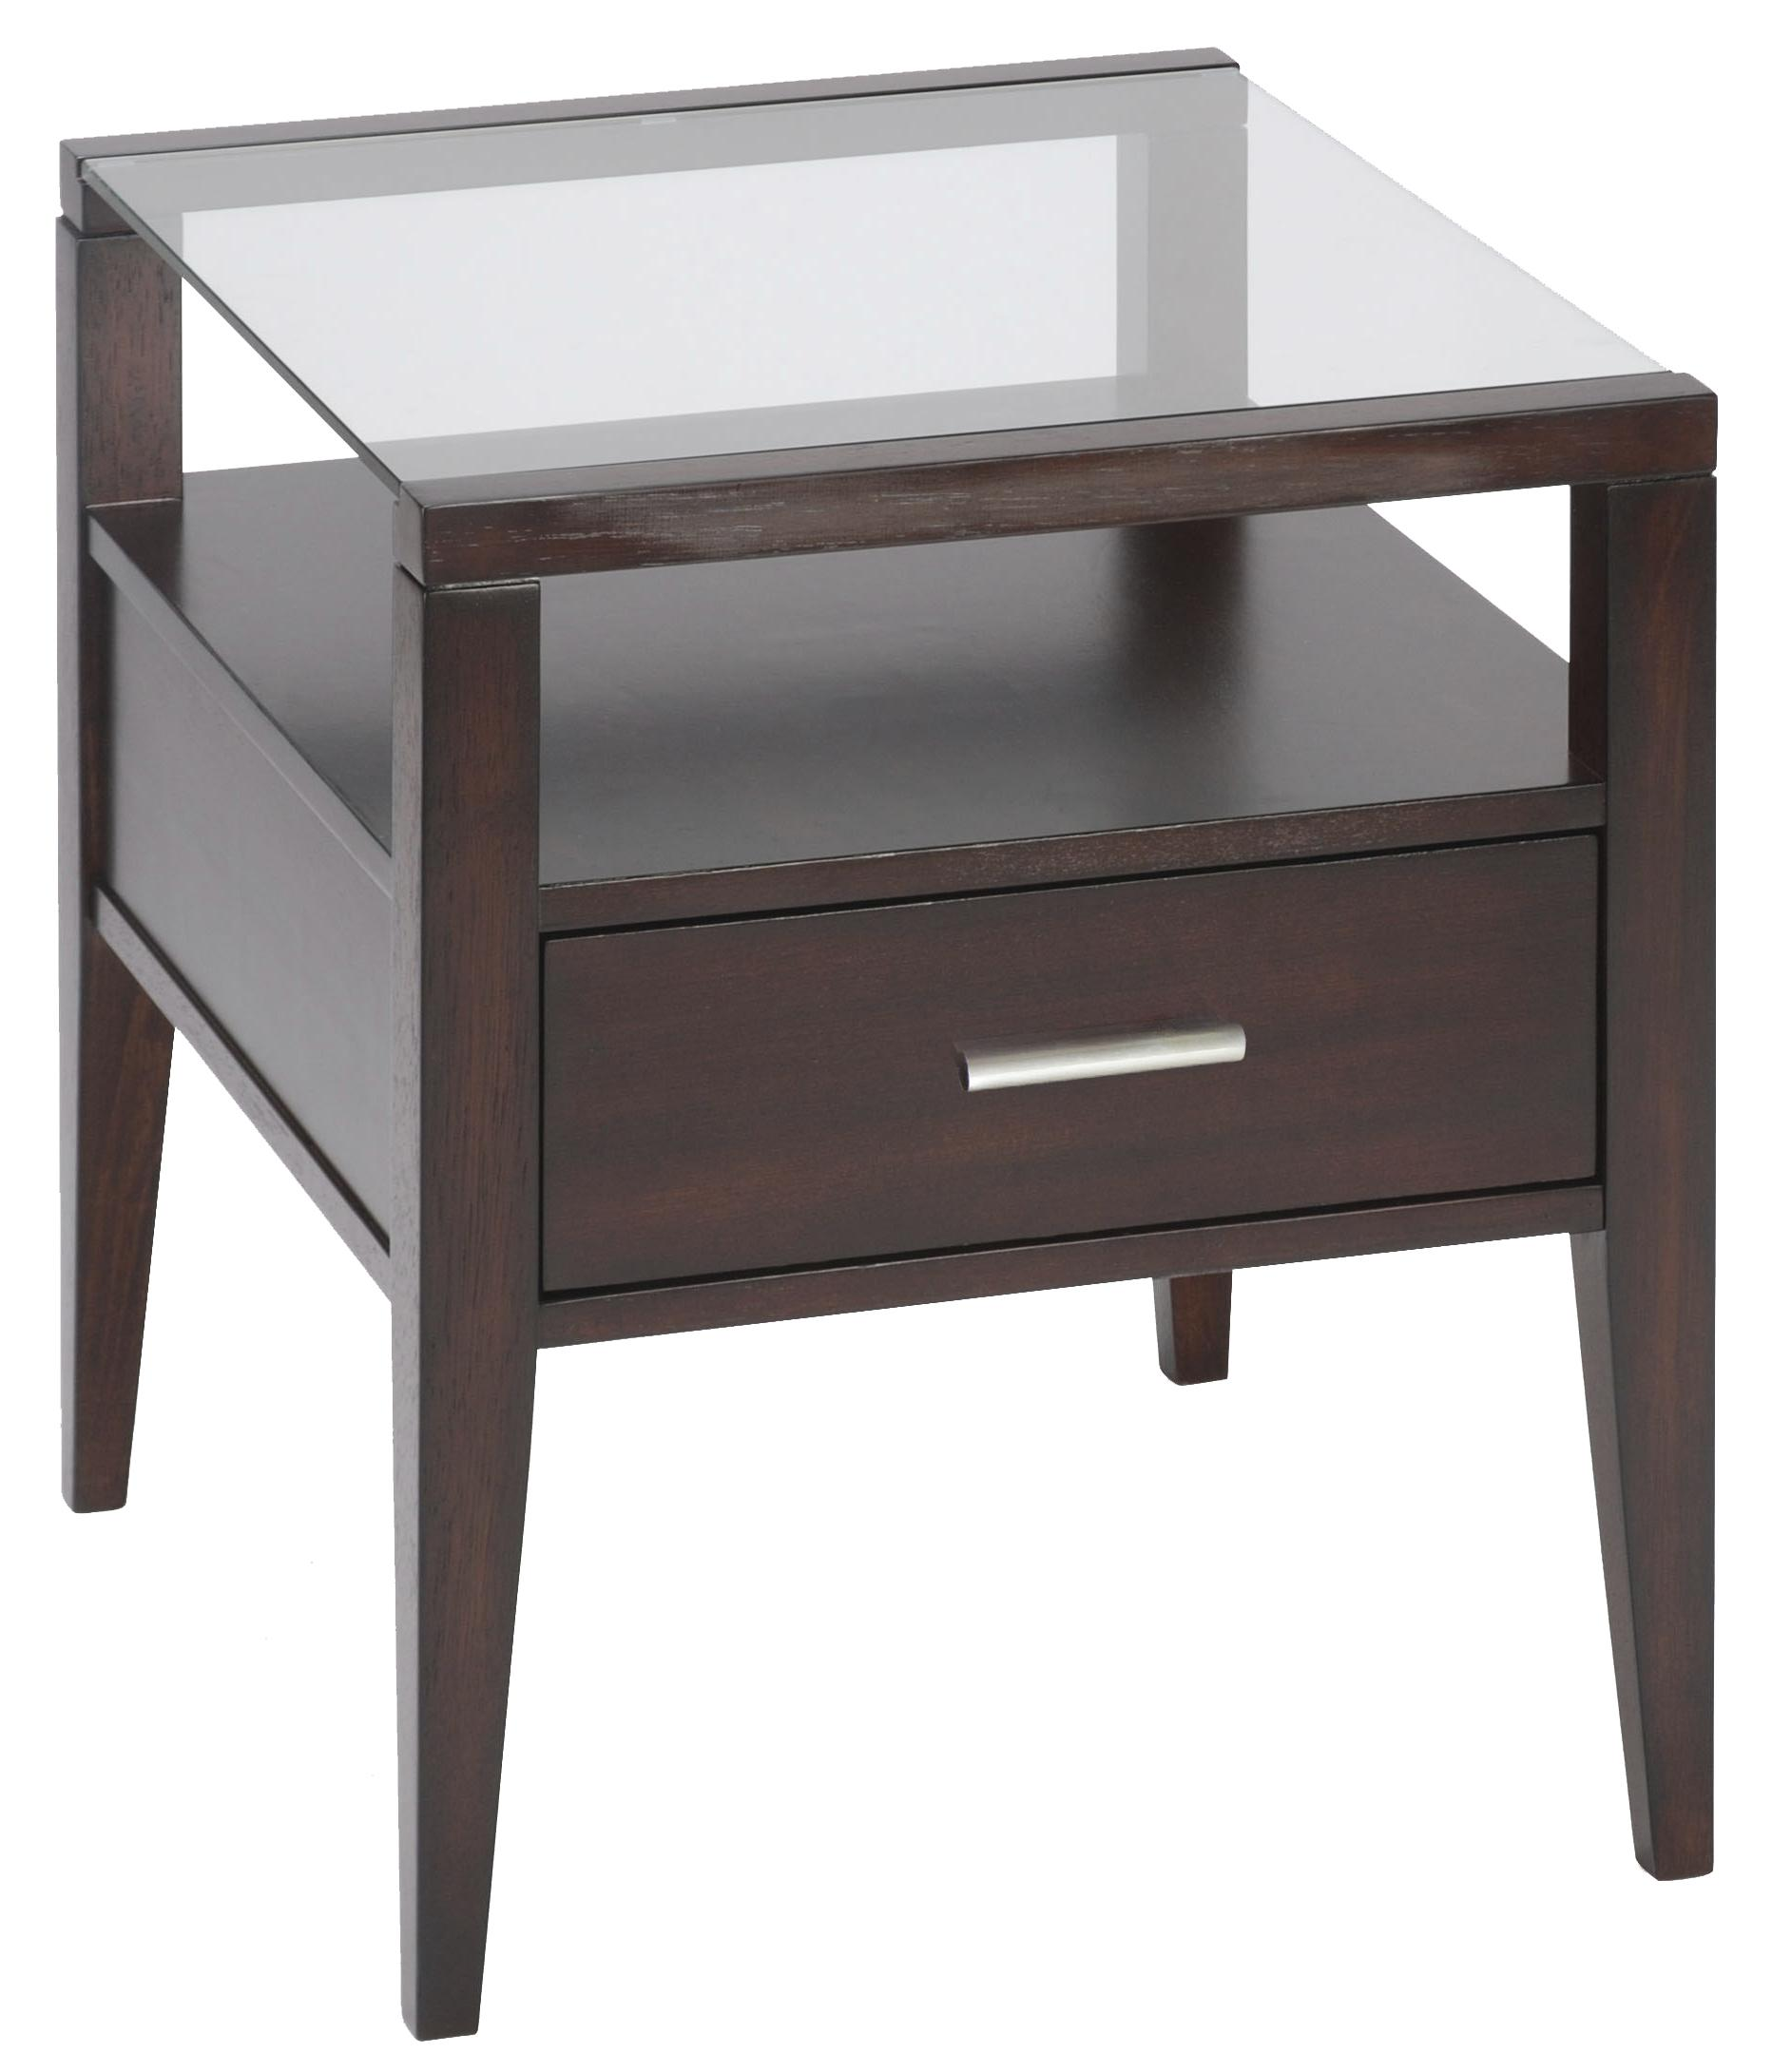 Contemporary Sofa Table with Two Drawers by Magnussen Home